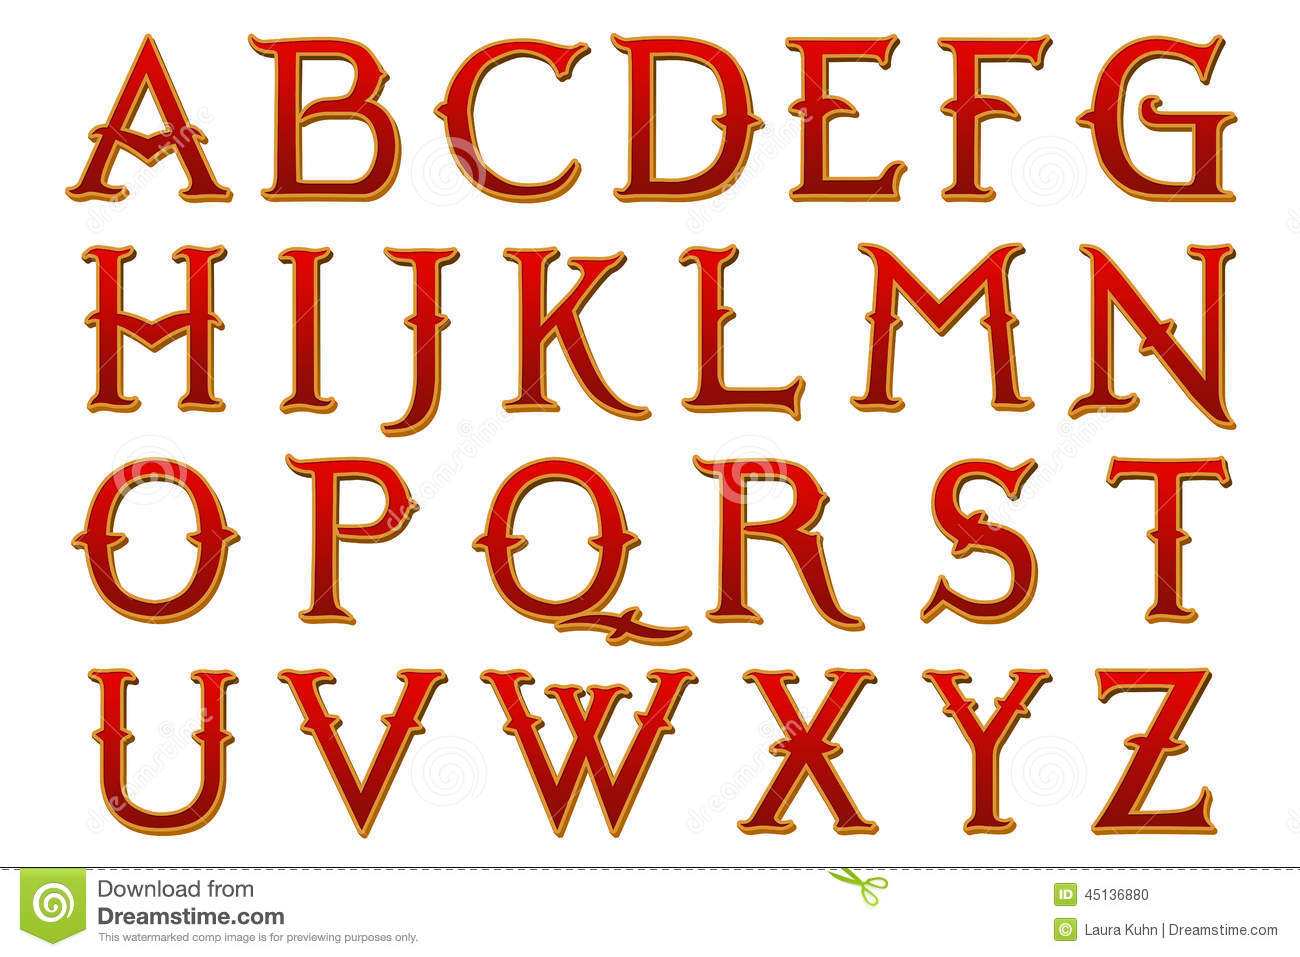 This A To Z Alphabet Is Hand Created Digitally For Your Design Purposes In Fantasy Land Narnia Style Perfect Posters Banners Scrapbooking Etc